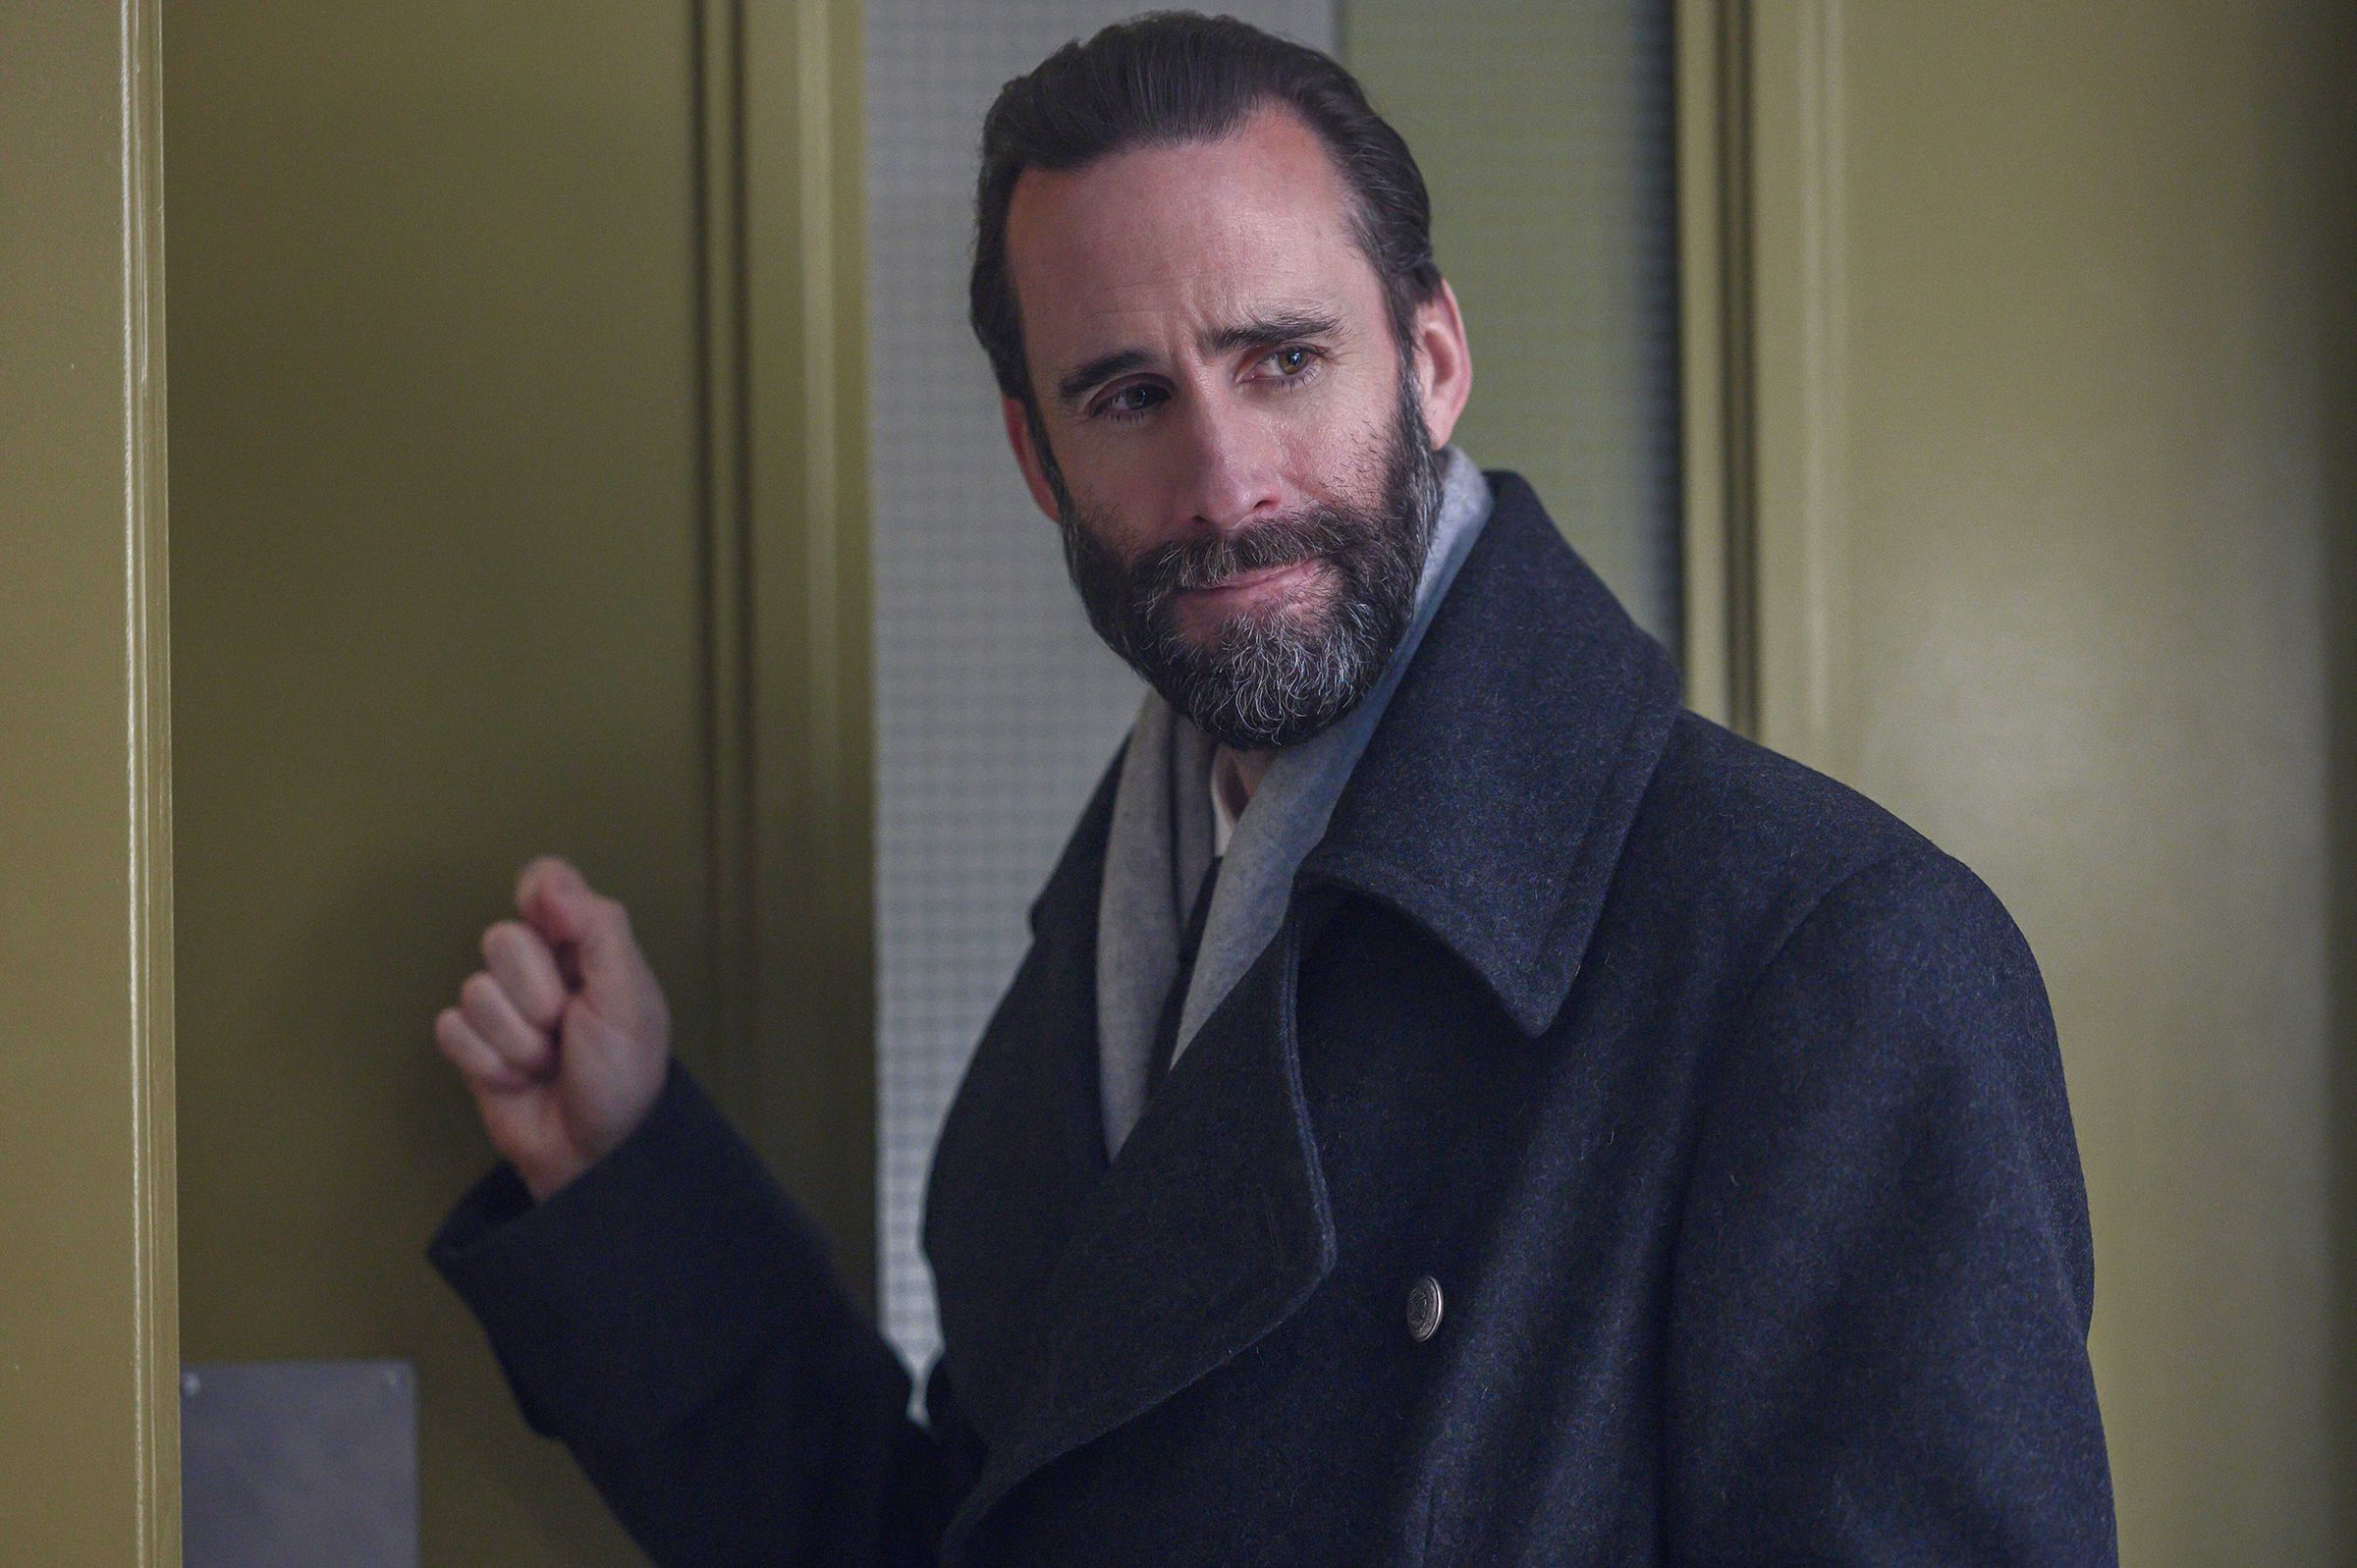 The Handmaid's Tale's Joseph Fiennes on Why He Loved the Season 4 Finale: 'I Was Cheering'